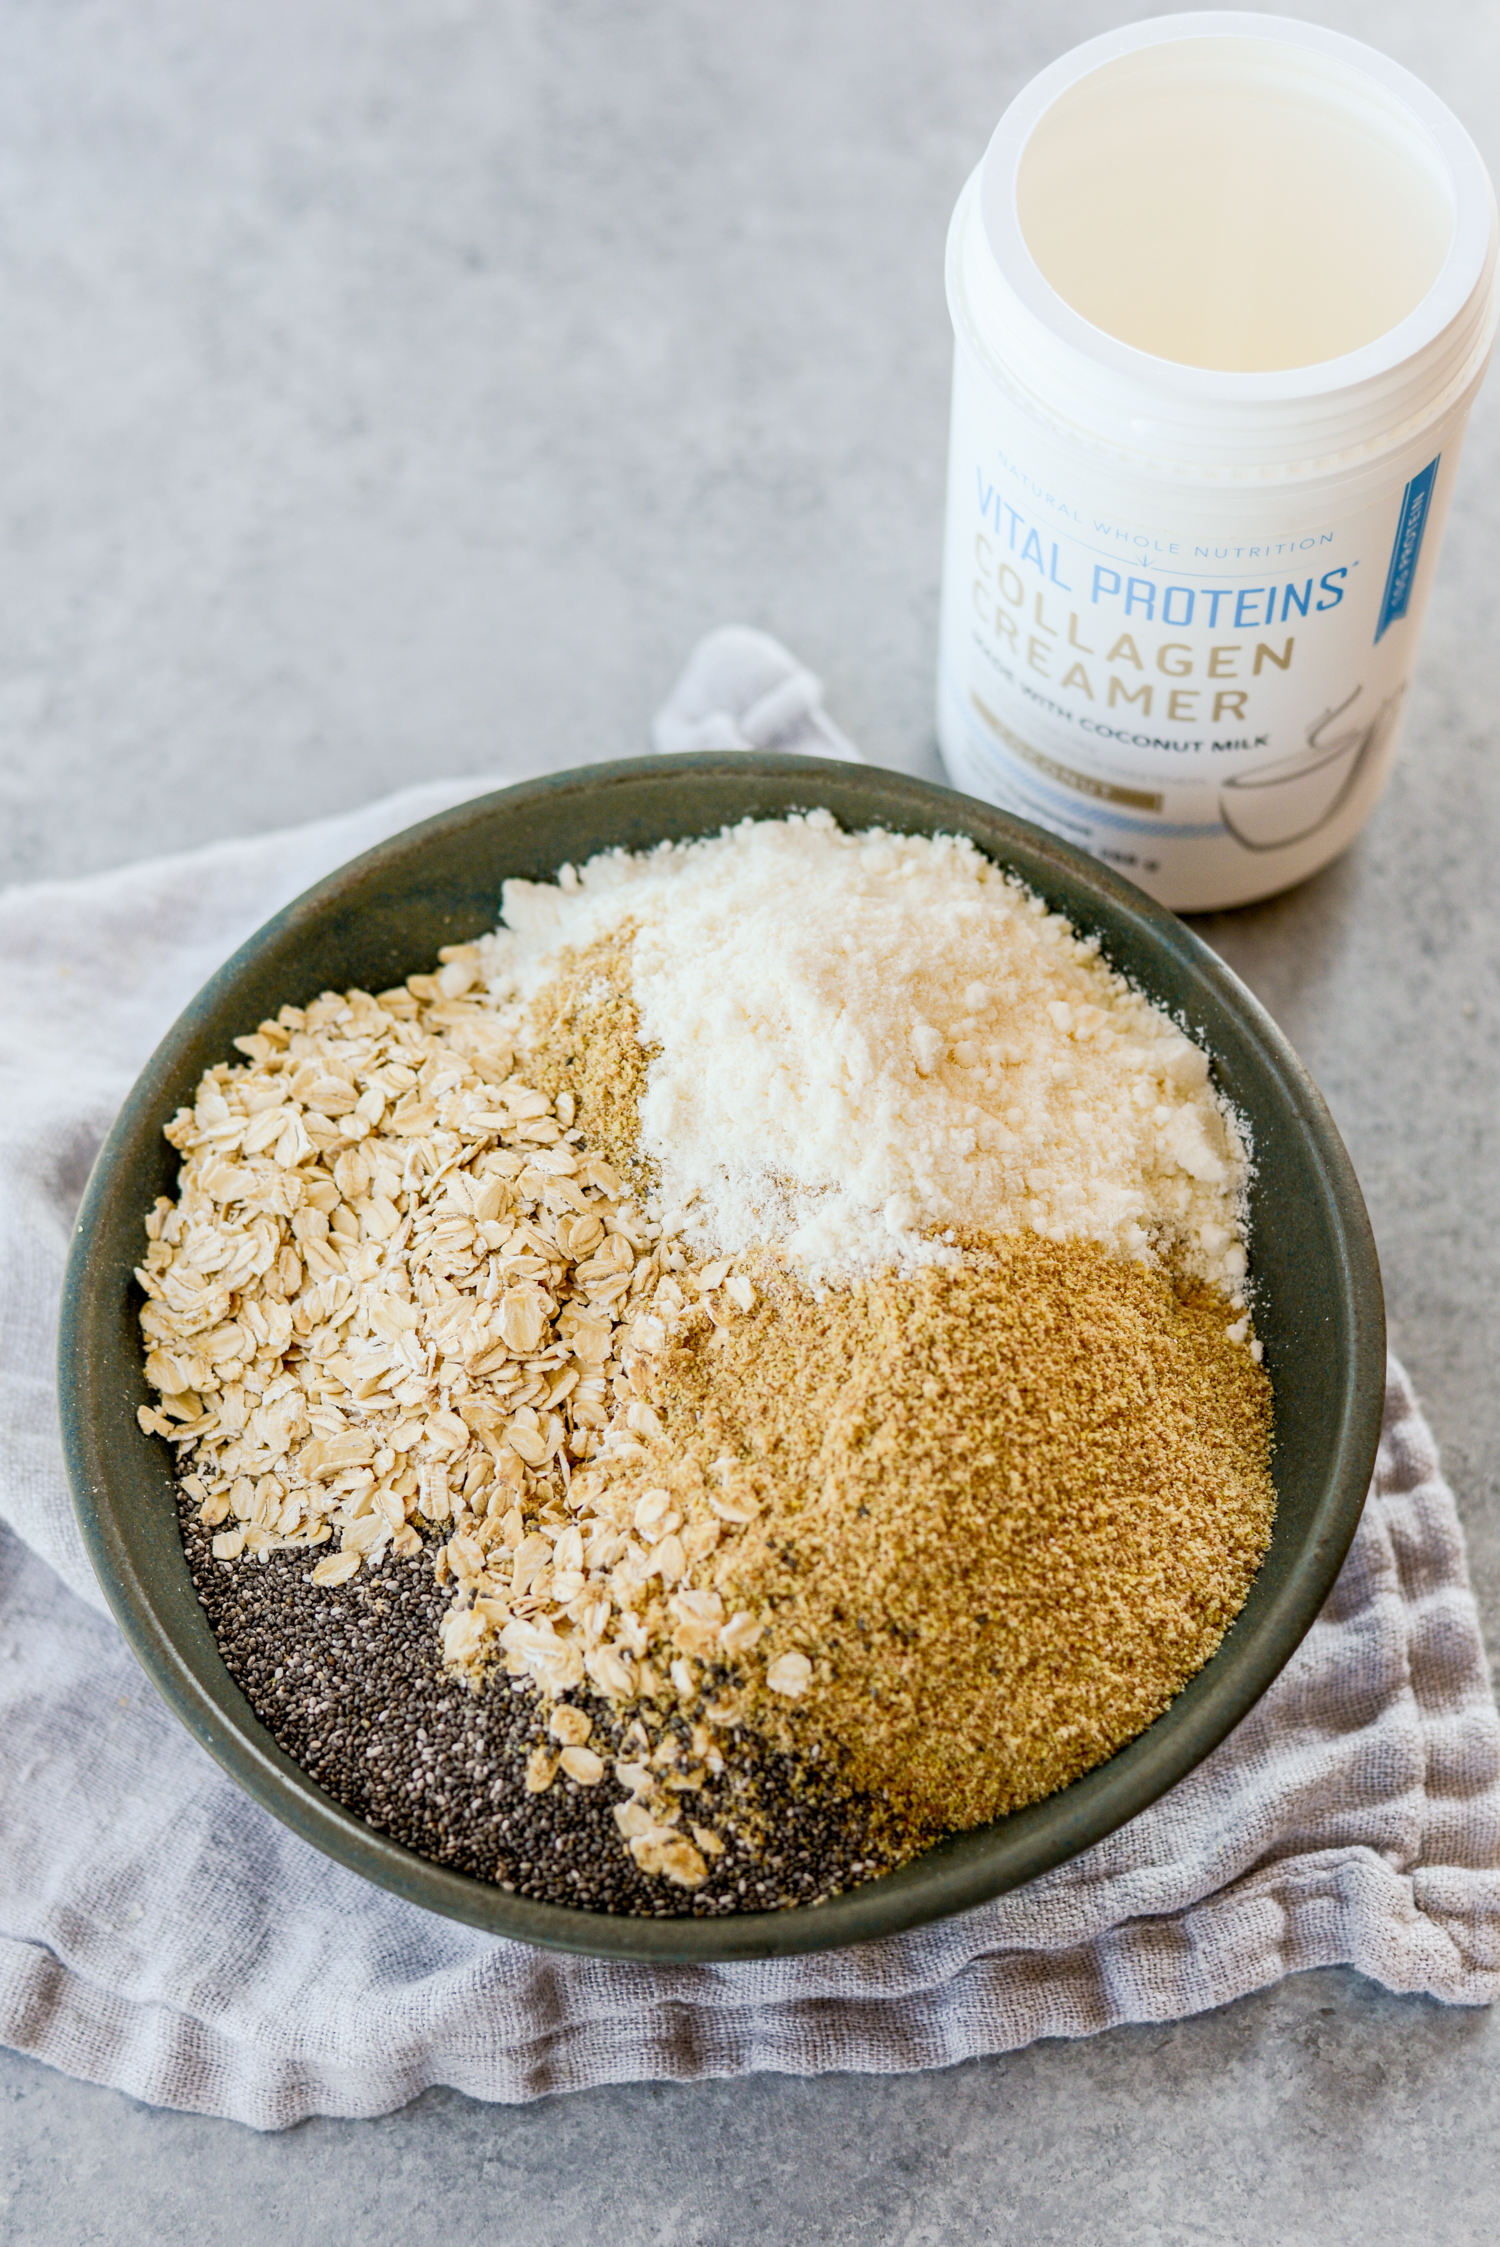 Healthy Protein Packed Instant Oatmeal Recipe 5-Ways | simplerootswellness.com #oatmeal #protein #quick #breakfast #healthy